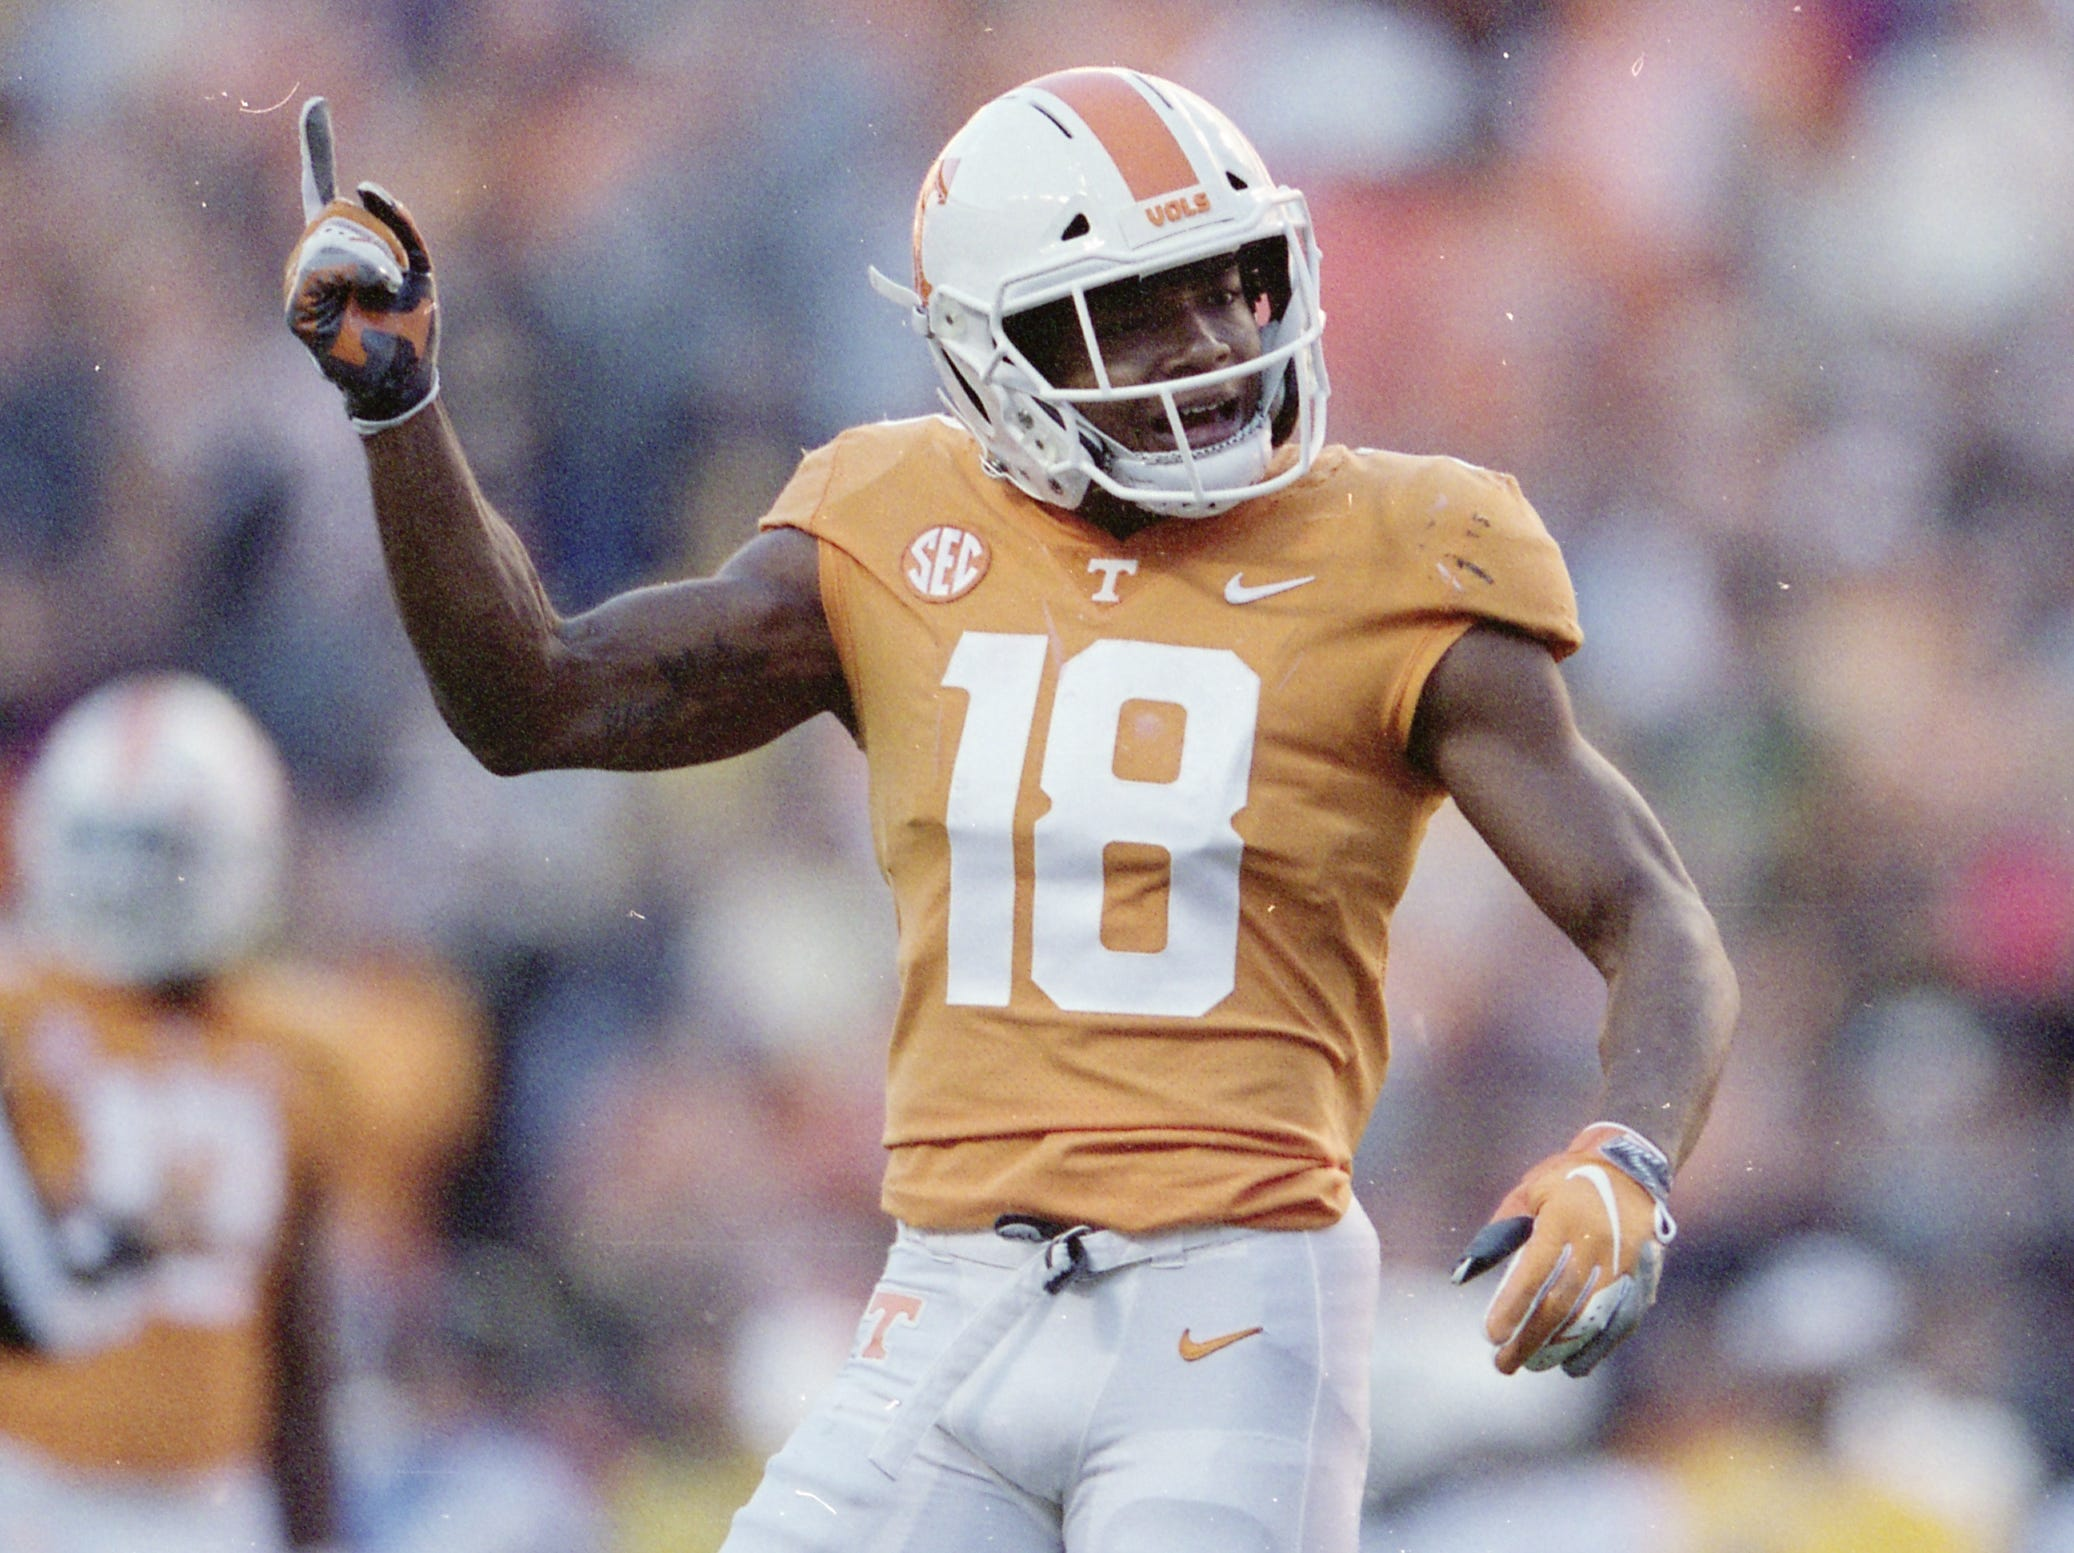 Tennessee defensive back Nigel Warrior (18) celebrates after making a play during a game between Tennessee and Missouri at Neyland Stadium in Knoxville, Tennessee on Saturday, November 17, 2018.